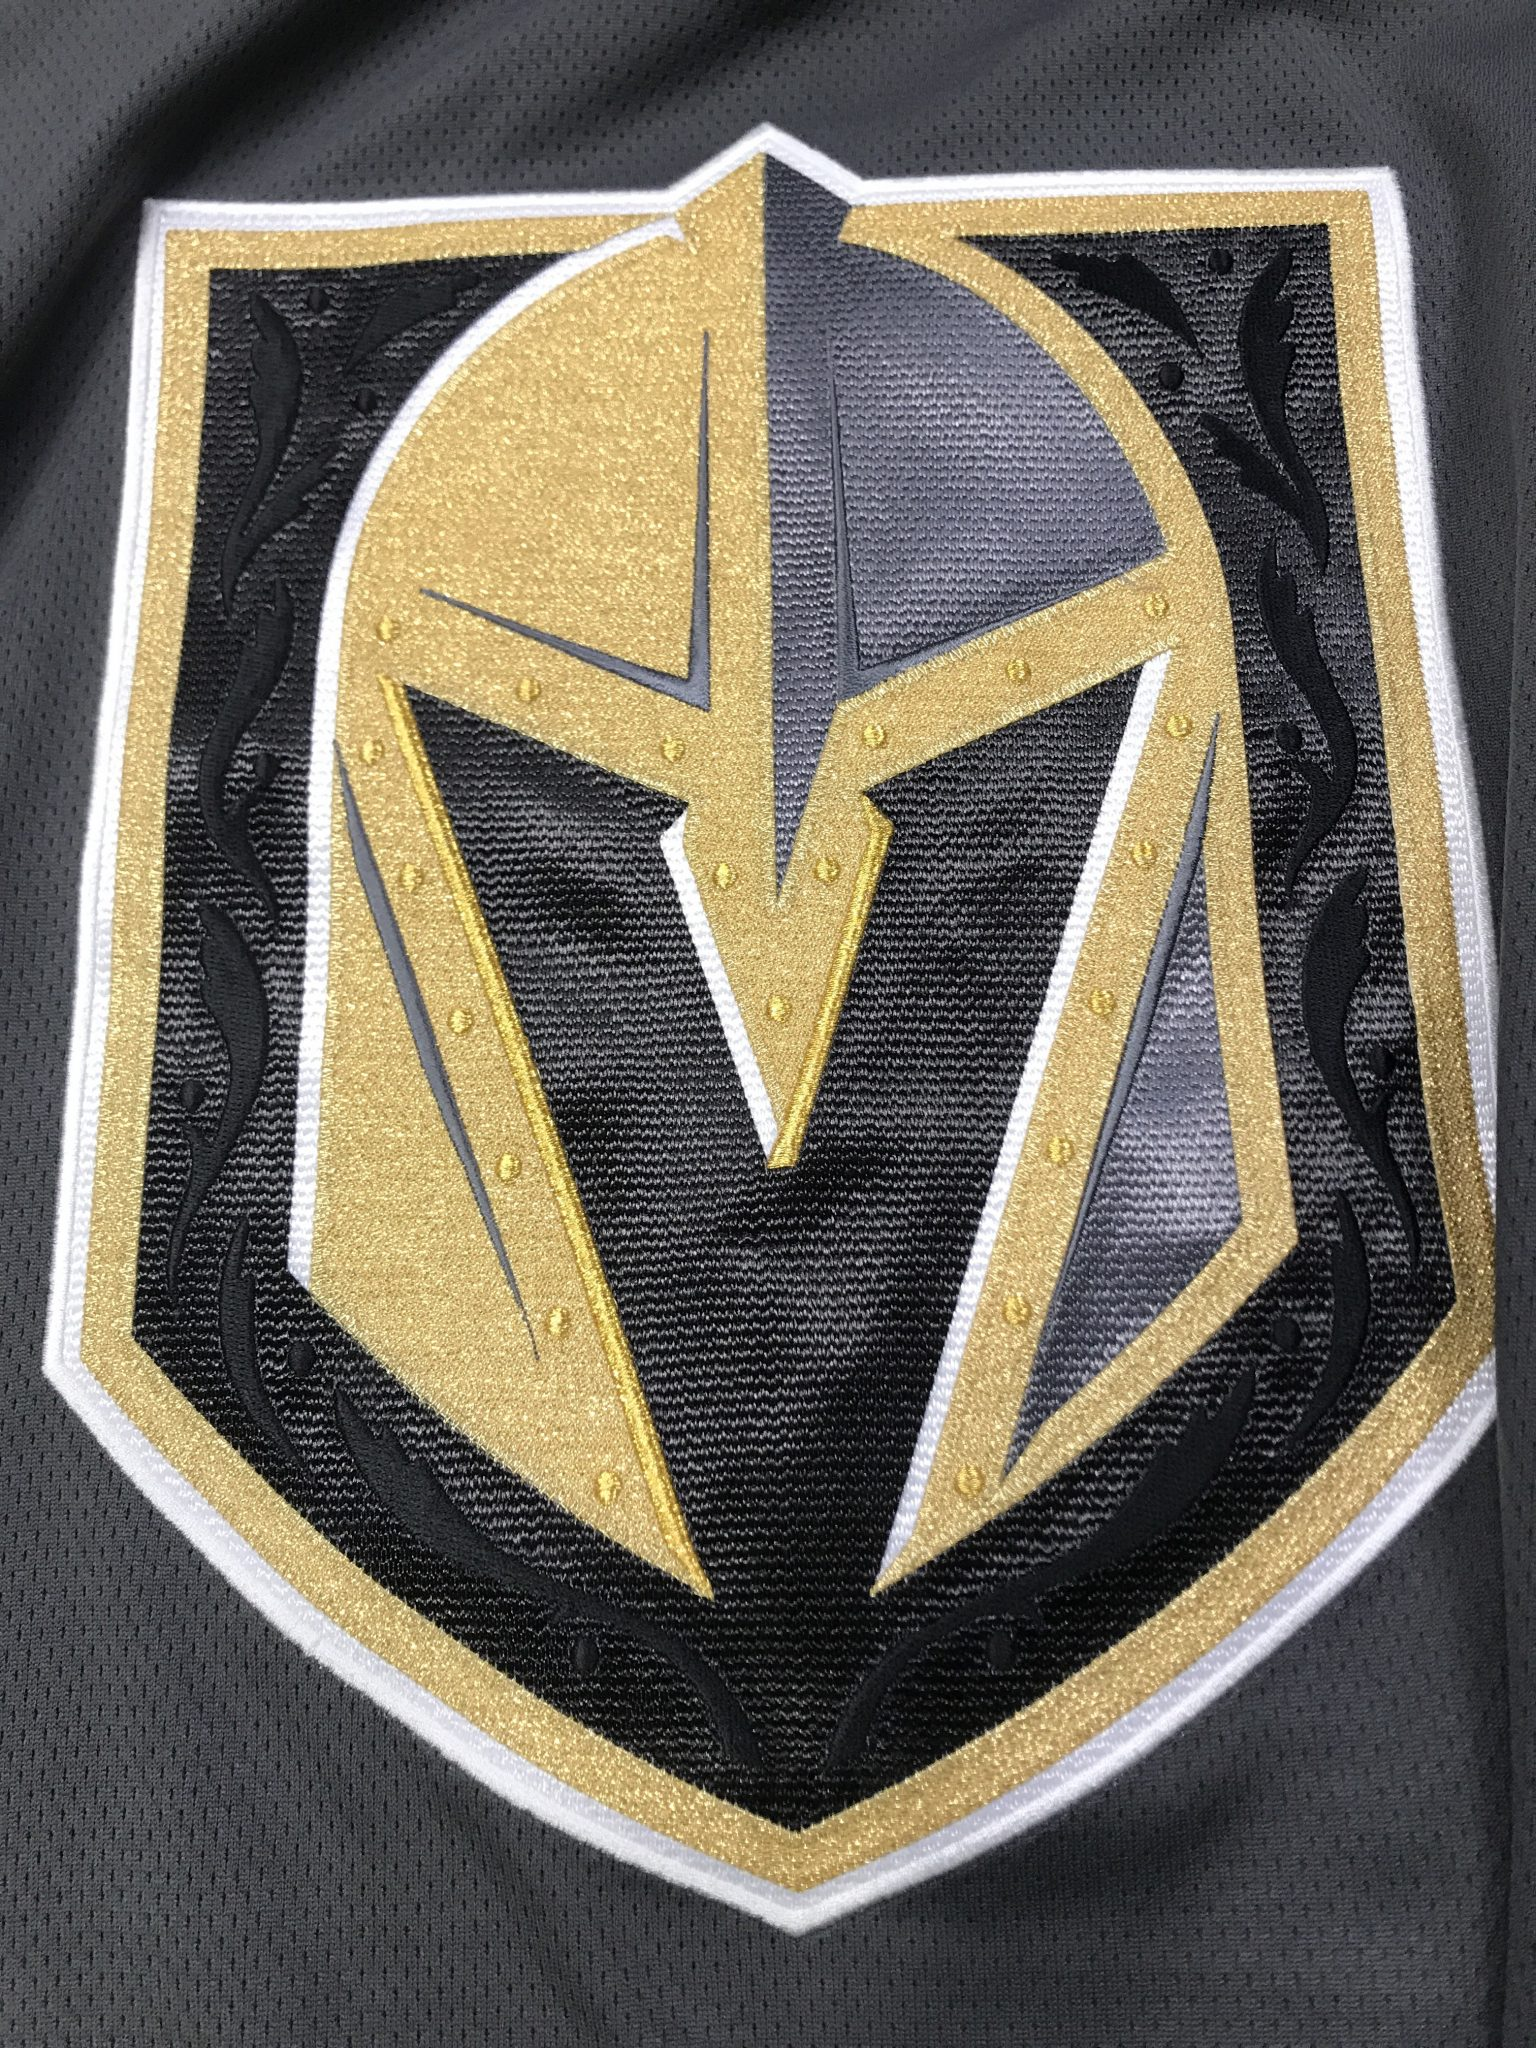 a868d8c1 On to my favorite part of the jersey, the intricate design inside of the  Vegas Golden Knights primary logo. Both jerseys have the rivets around the  V and ...